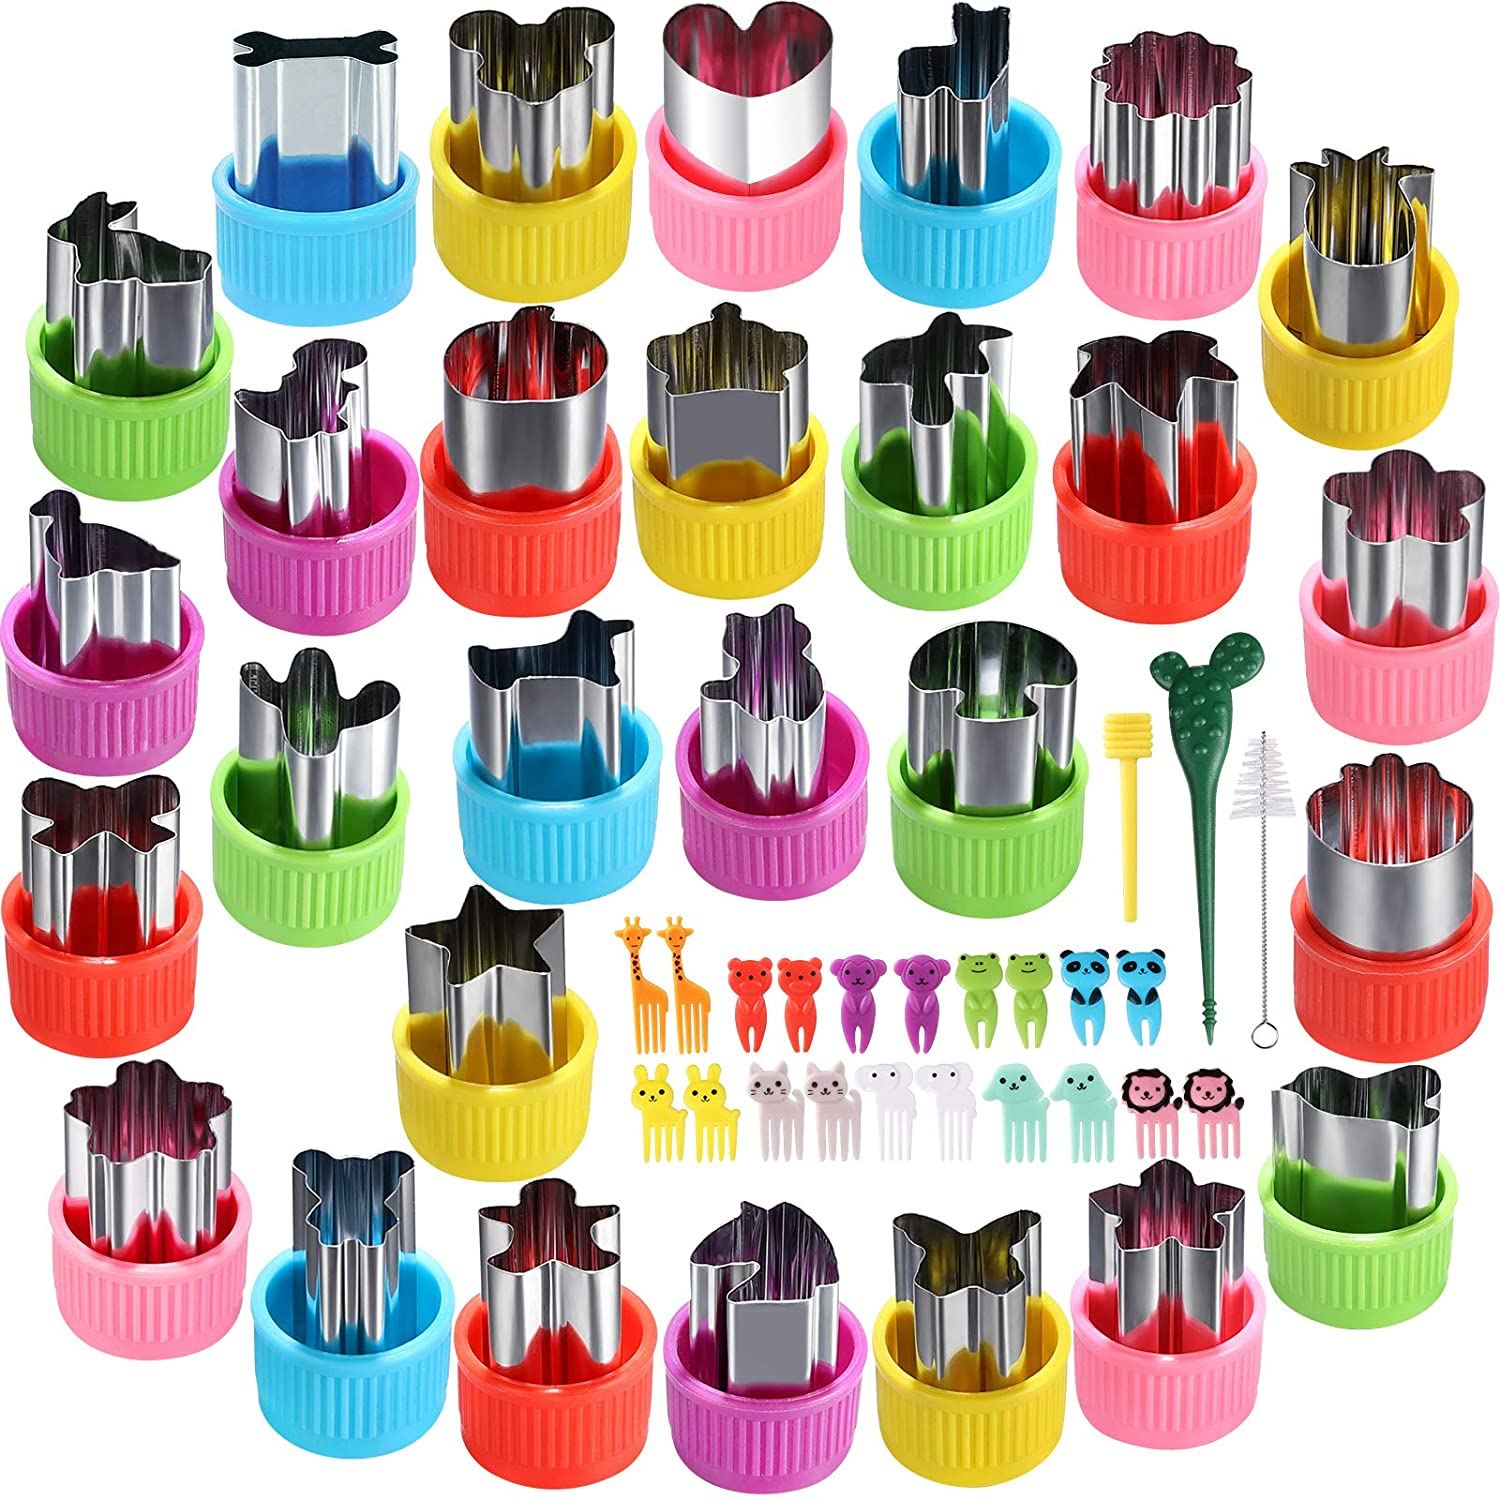 FIRETREESILVERFLOWER Vegetable Knife Shape set,Mini Size Biscuit Knife Set Fruit Biscuit Pastry Stamp Mold, Suitable For Children's Baking And Food Supplements.(28Pcs+20 Forks)